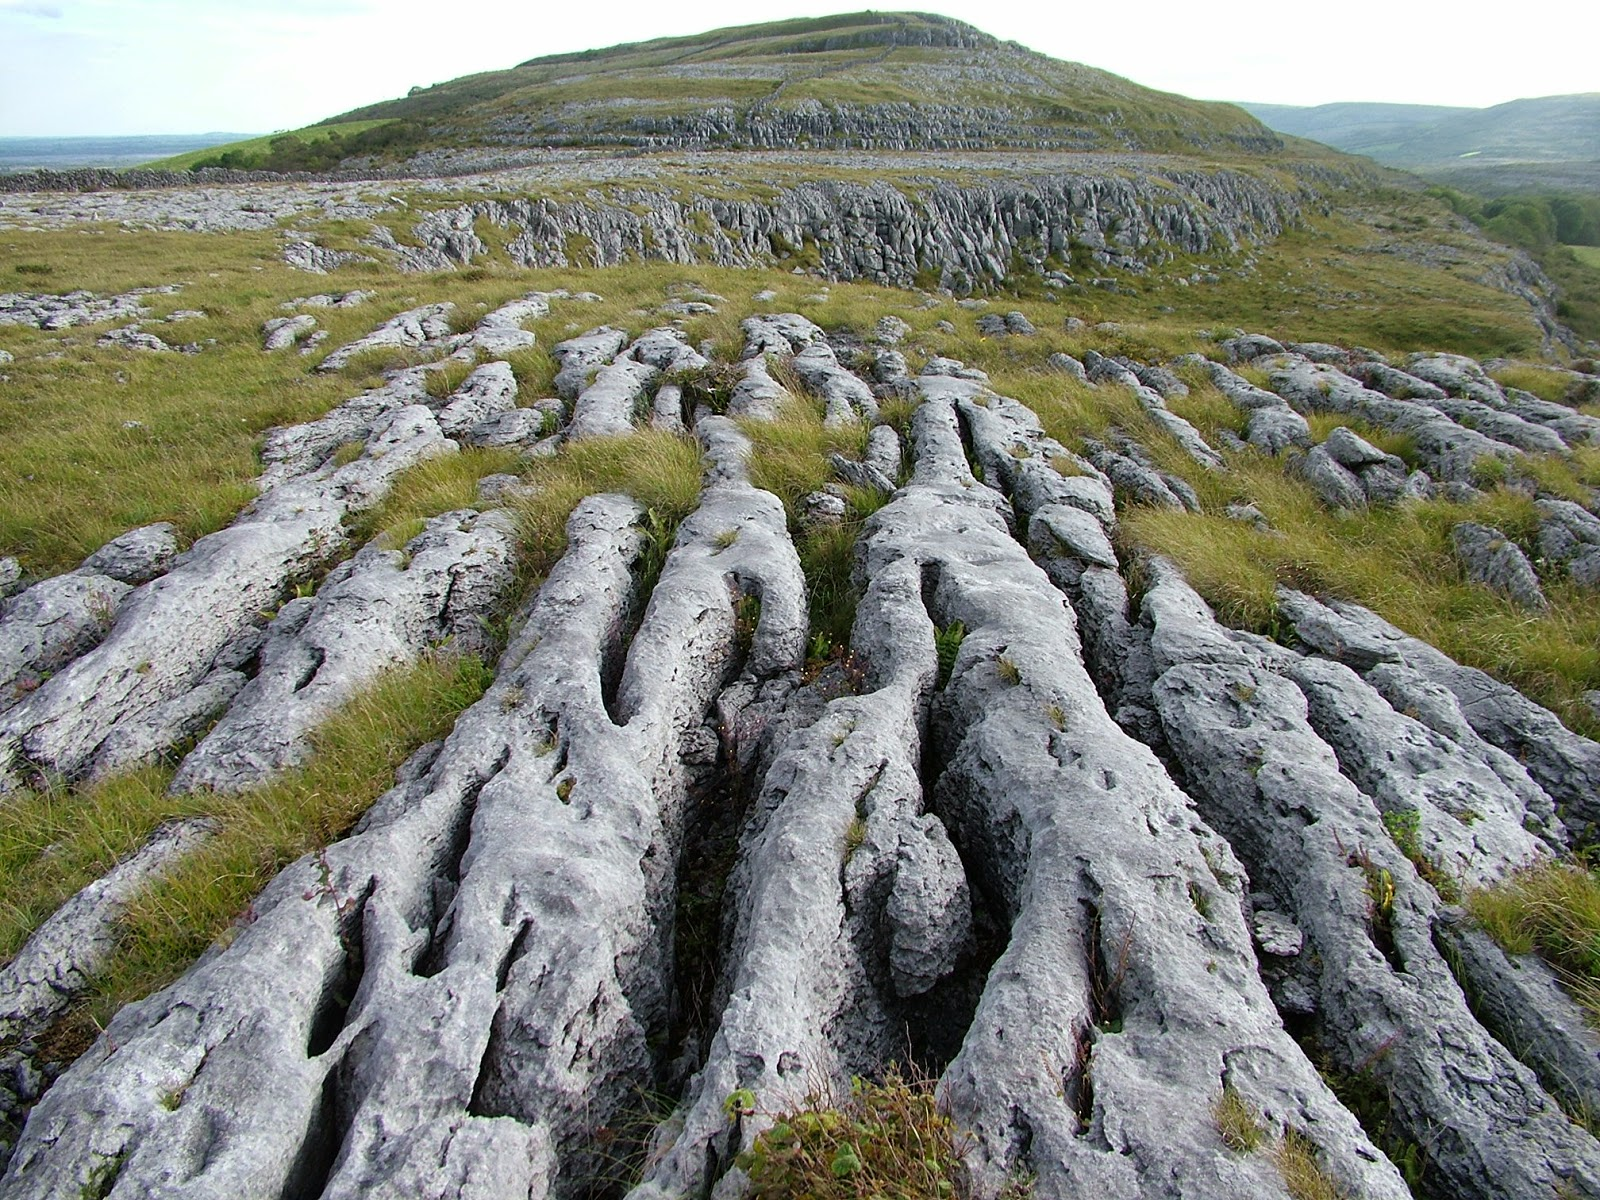 Academic to reveal Burren's links with The Lord of the Rings